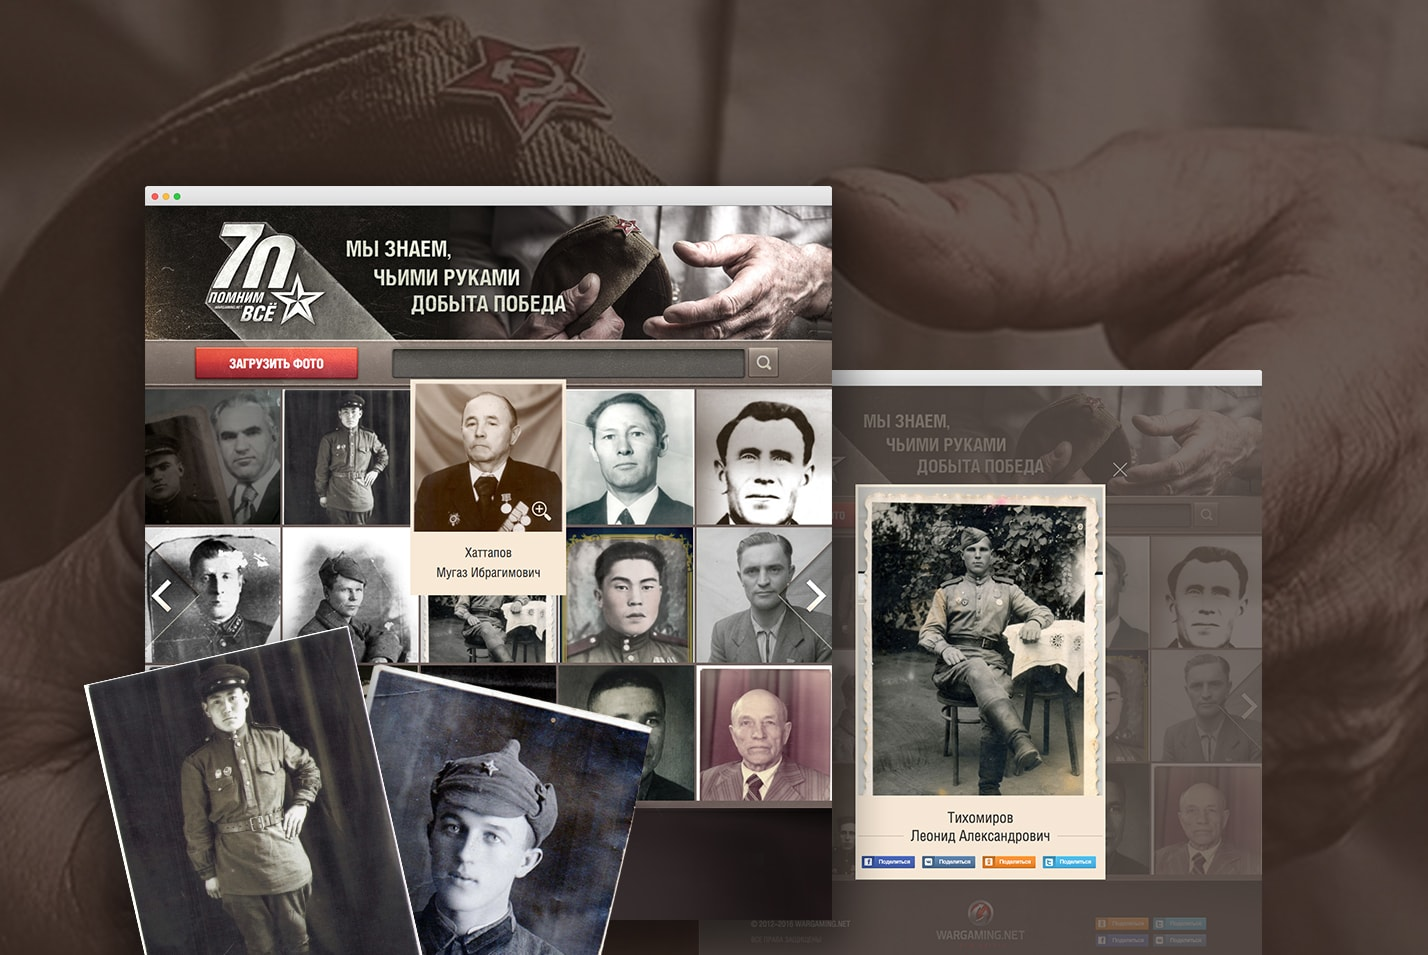 Promotional website commemorating the 70-year anniversary of WW2 victory